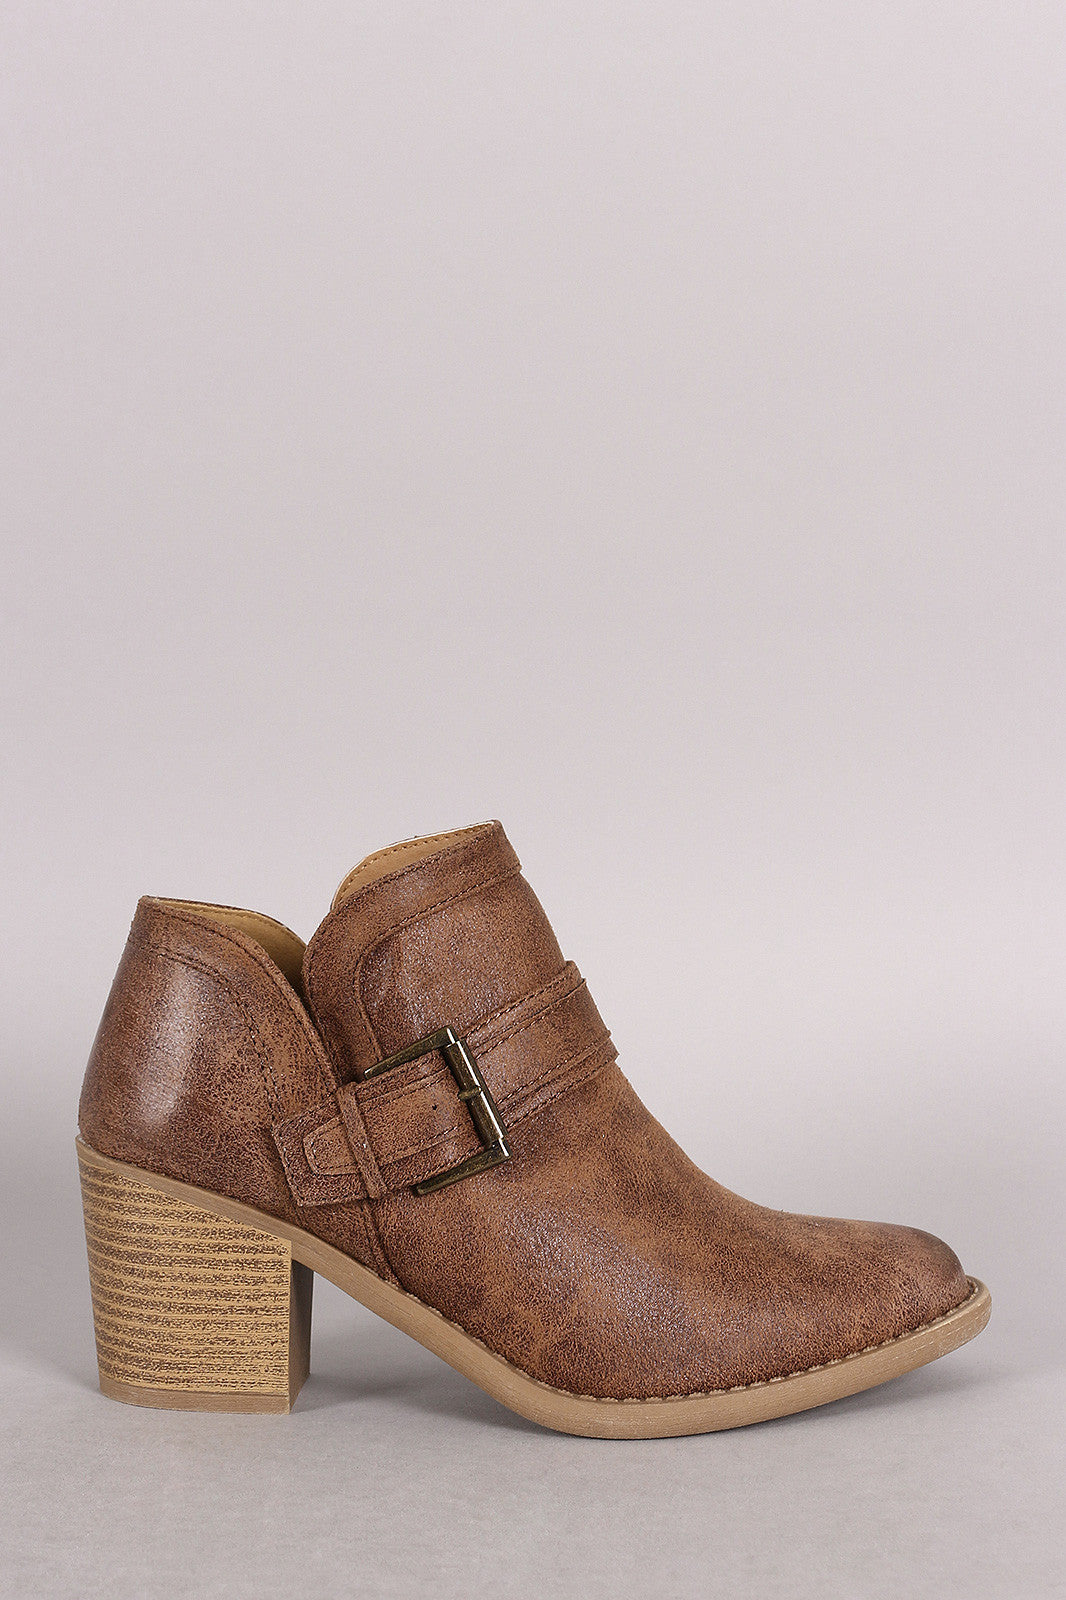 Qupid Buckled Cowgirl Chunky Heeled Booties - Thick 'N' Curvy Shop - 7